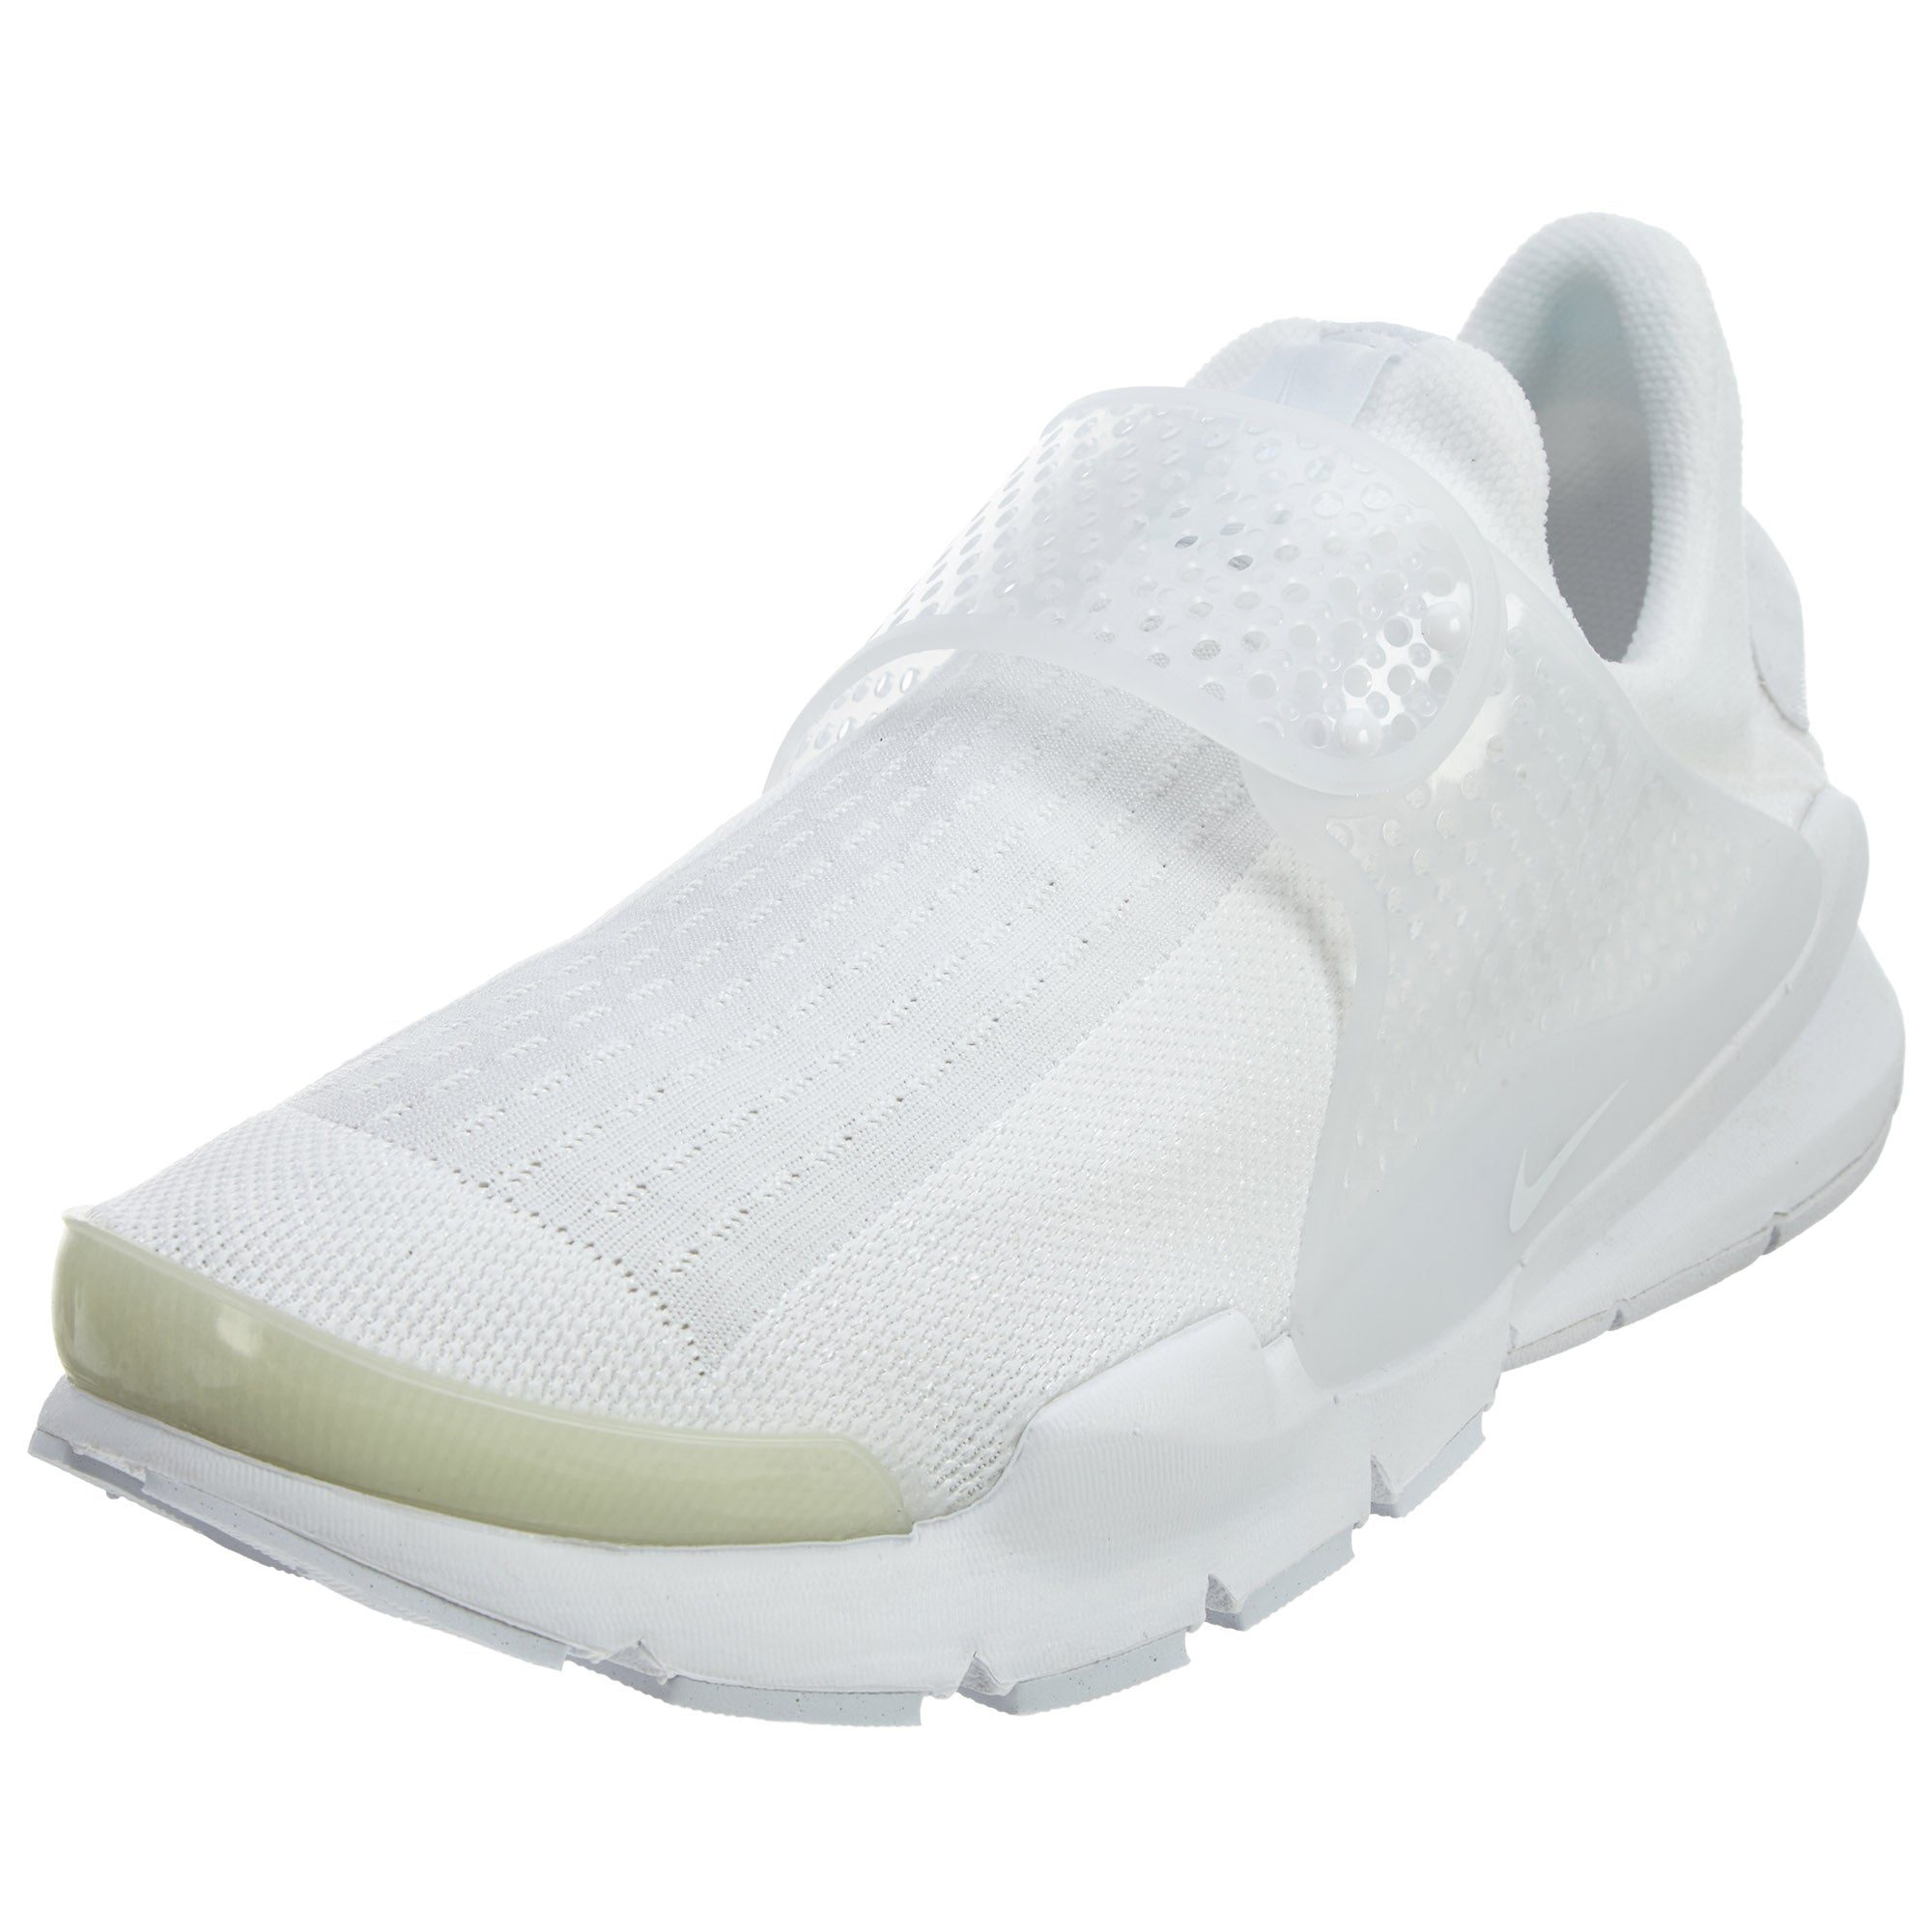 sports shoes 6c9e5 01ffc Nike Sock Dart Kjcrd Mens Style   819686